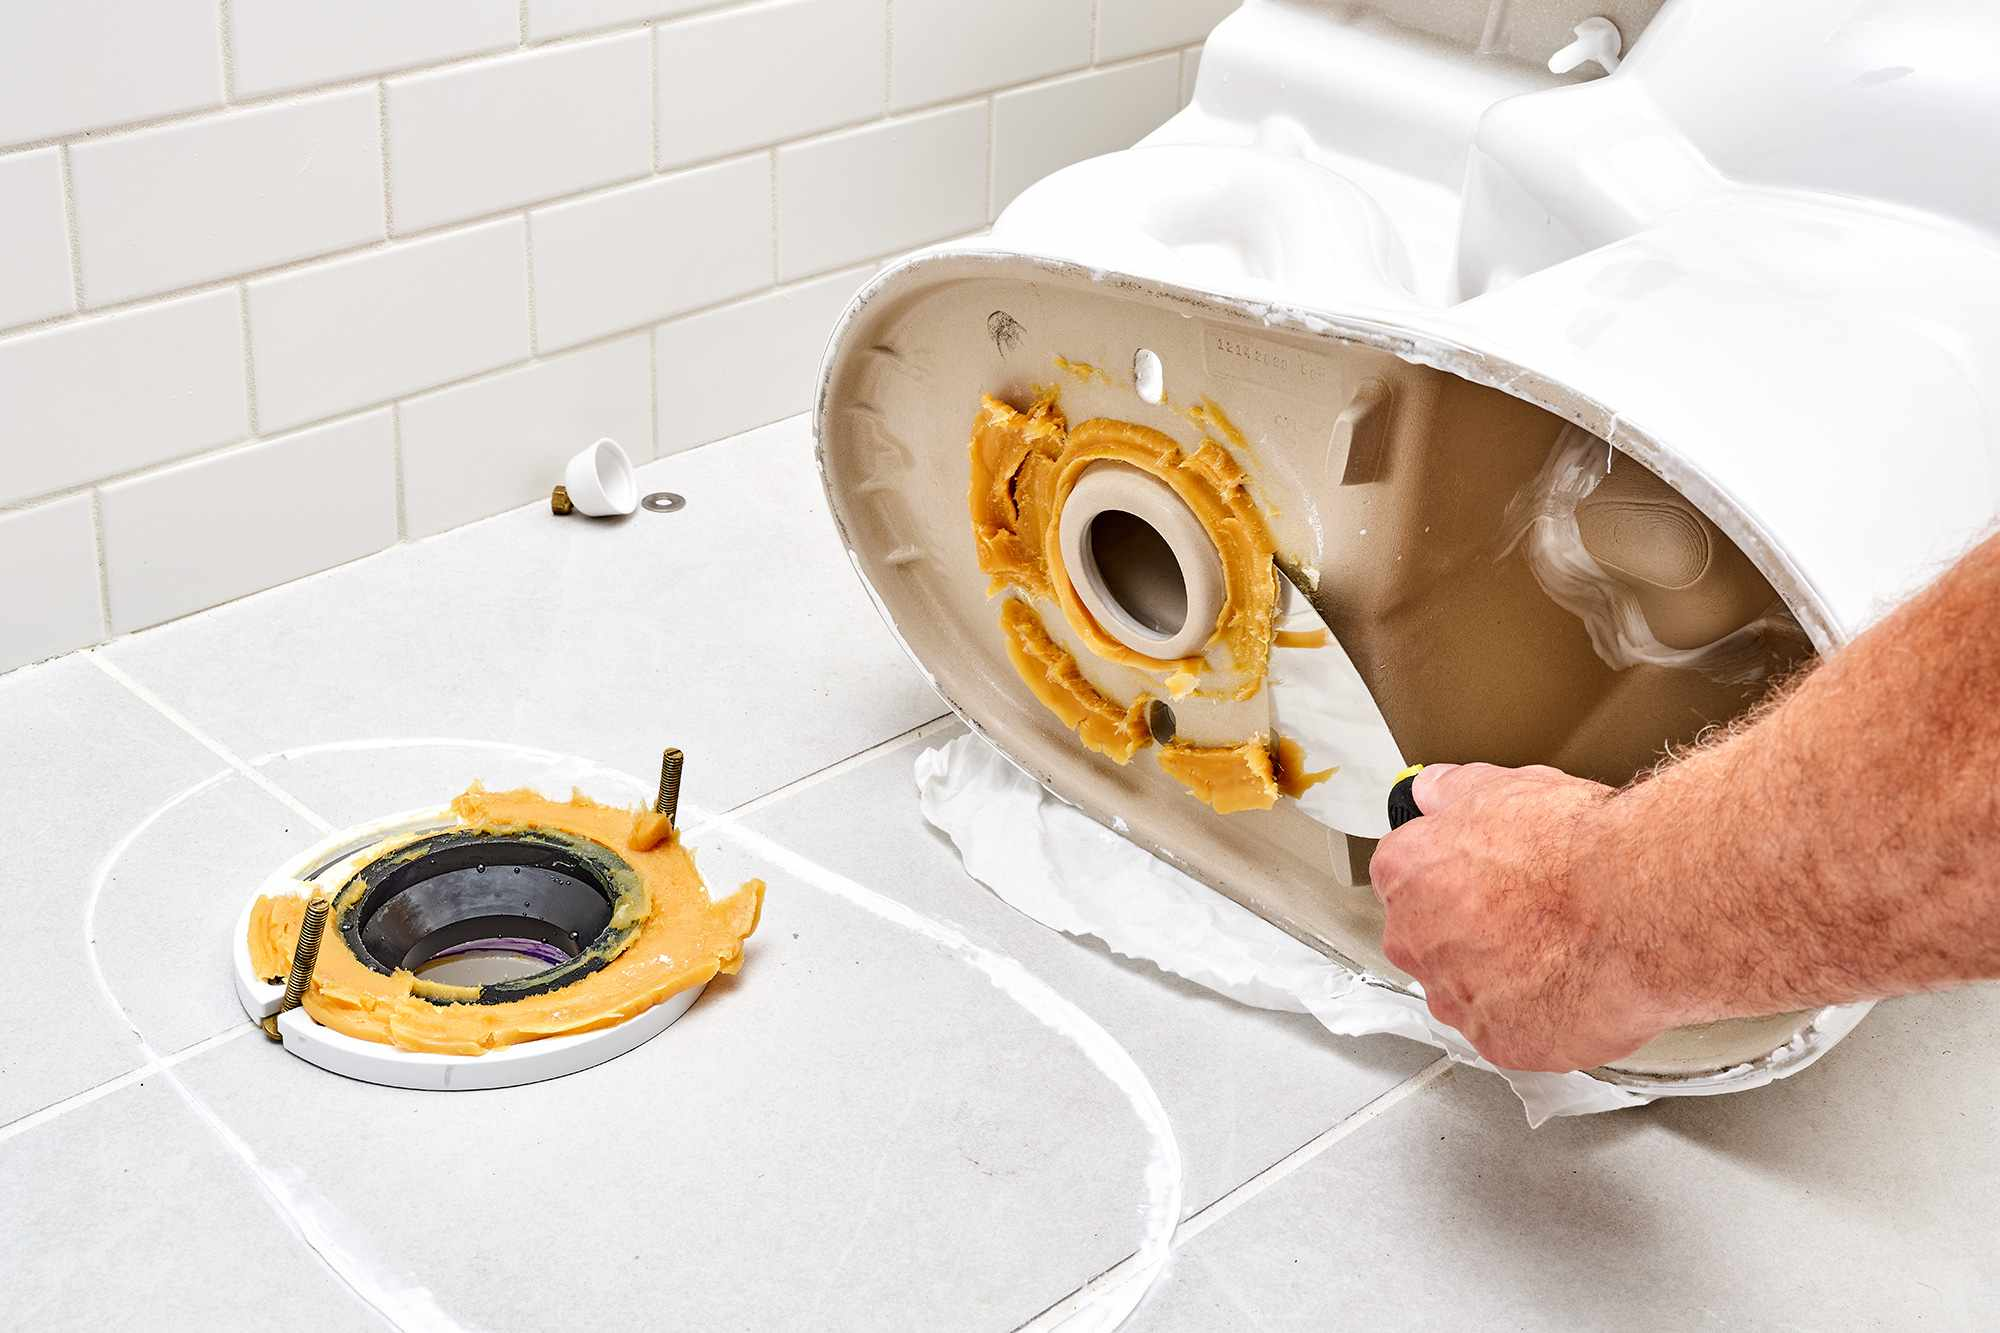 Bottom of toilet cleaned with putty knife to scrape off old wax for cleaning